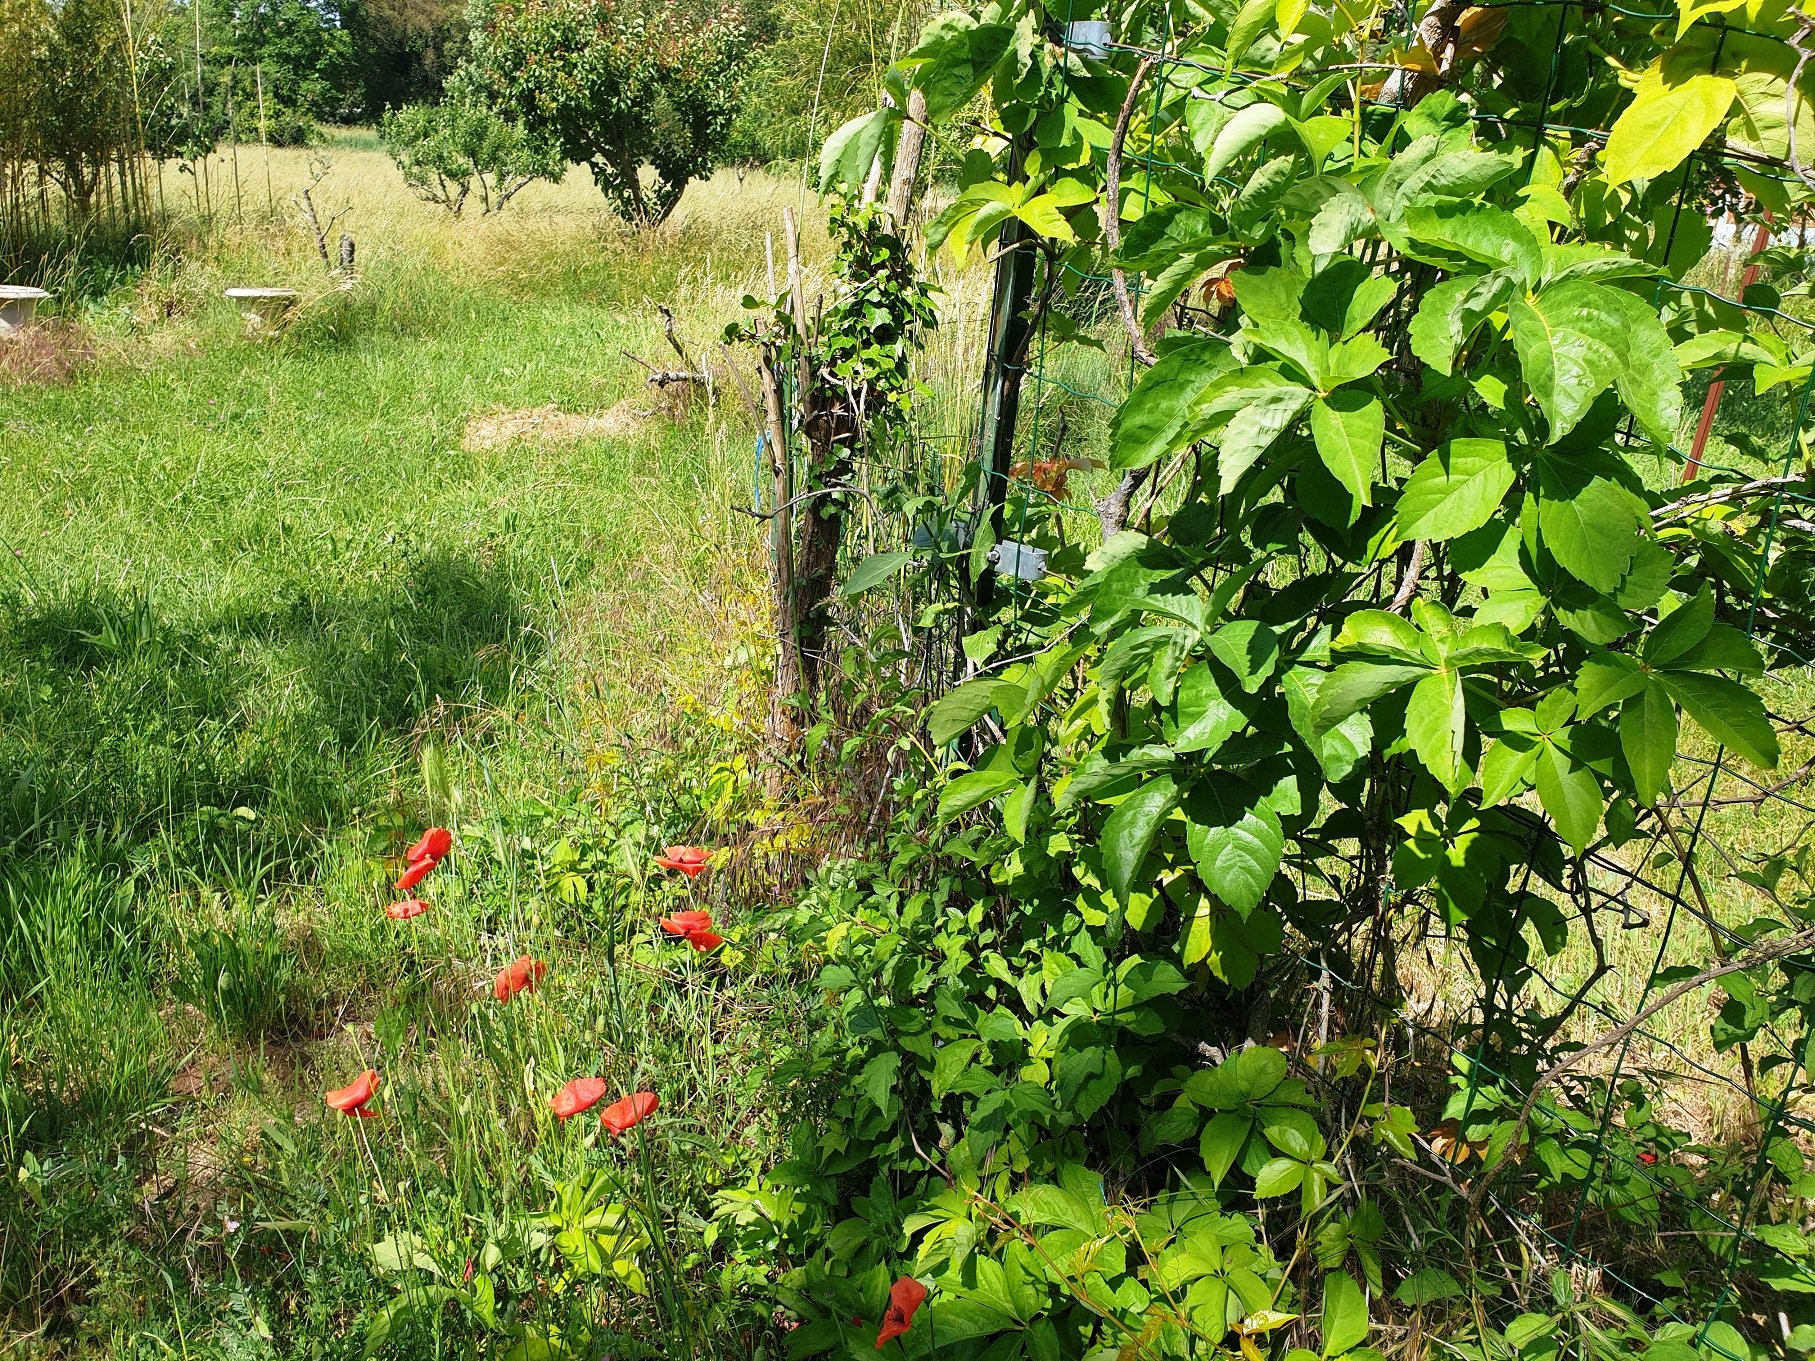 Bastidon in Provence  3808 m² of land